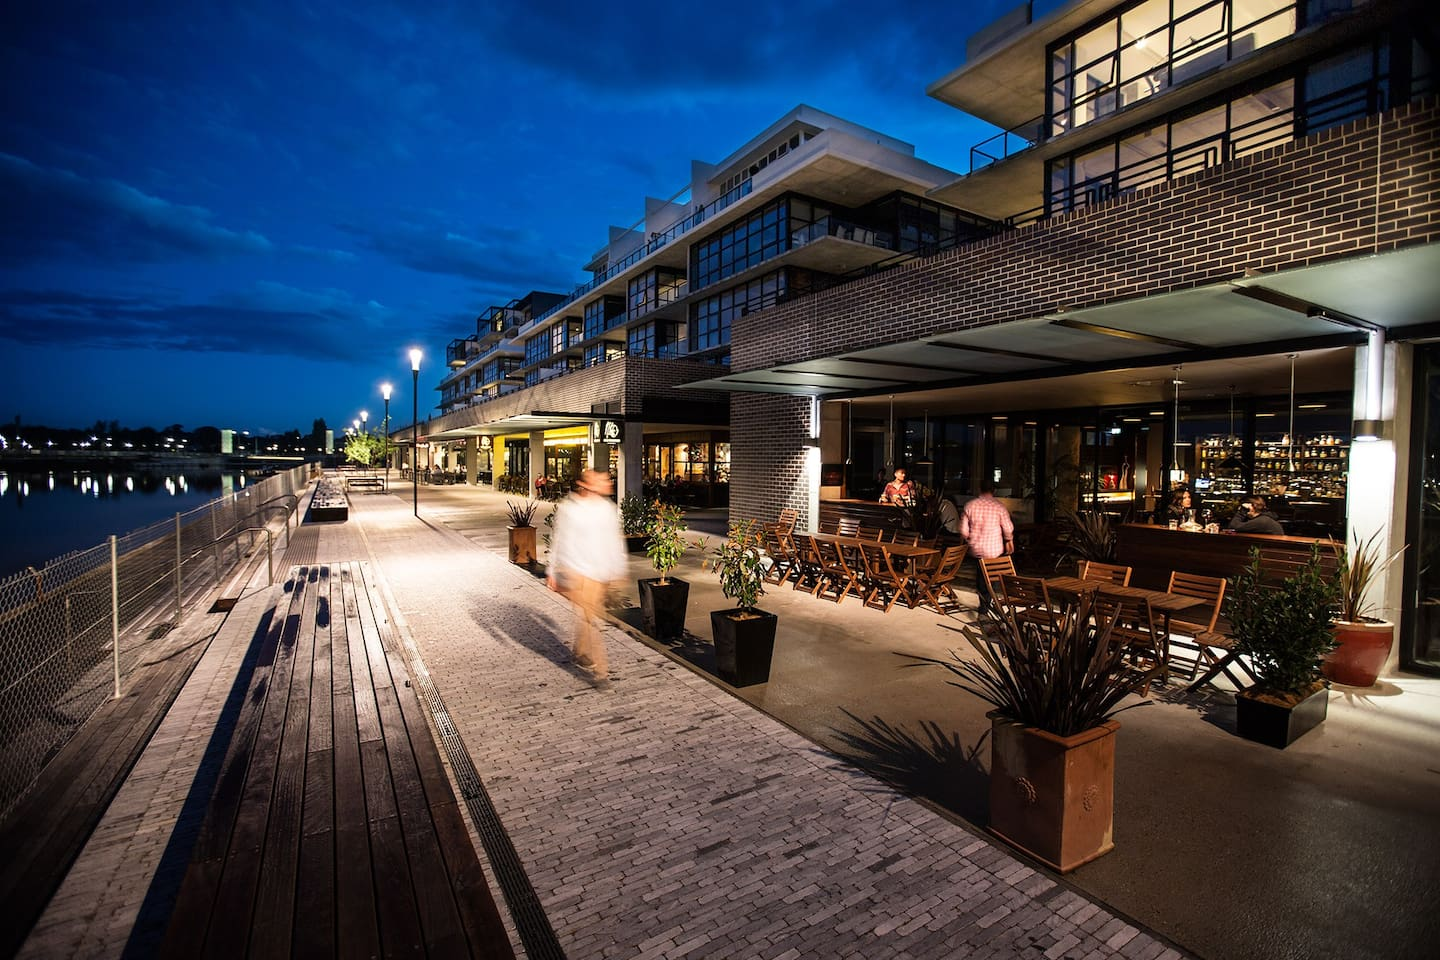 Kingston Foreshore nightlife at your doorstep!